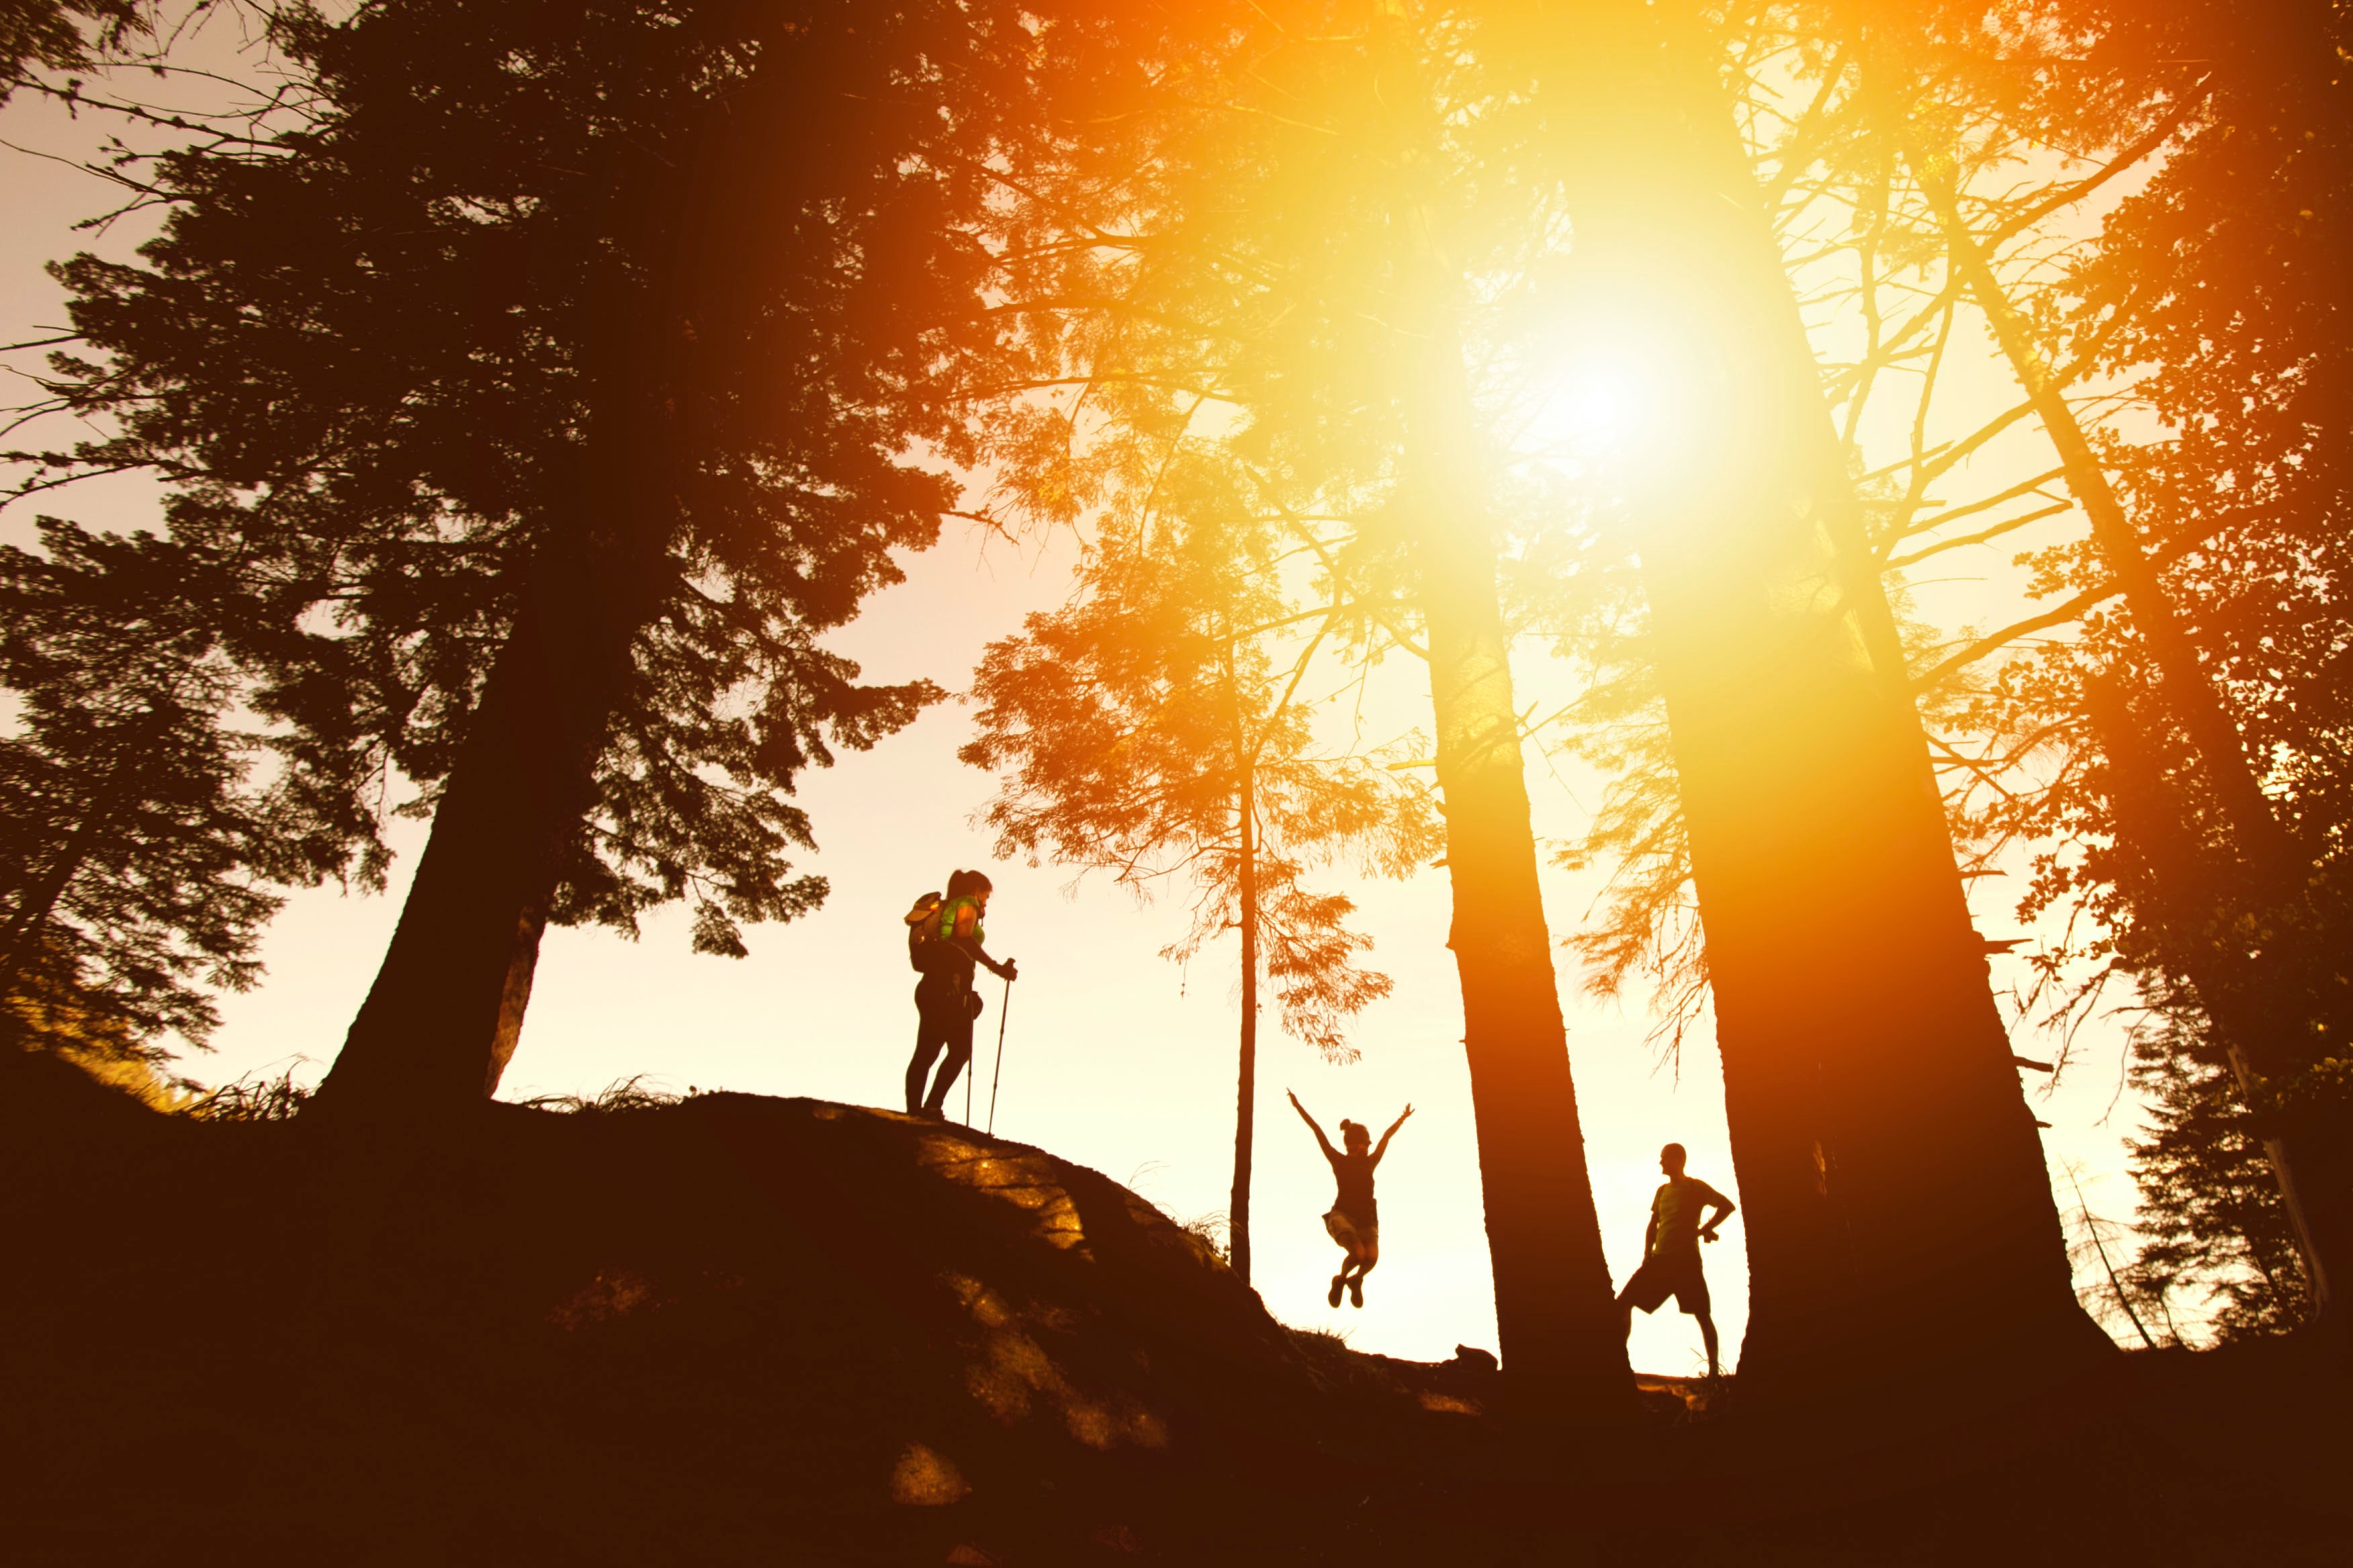 Three hiker silhouettes among large trees at sunset